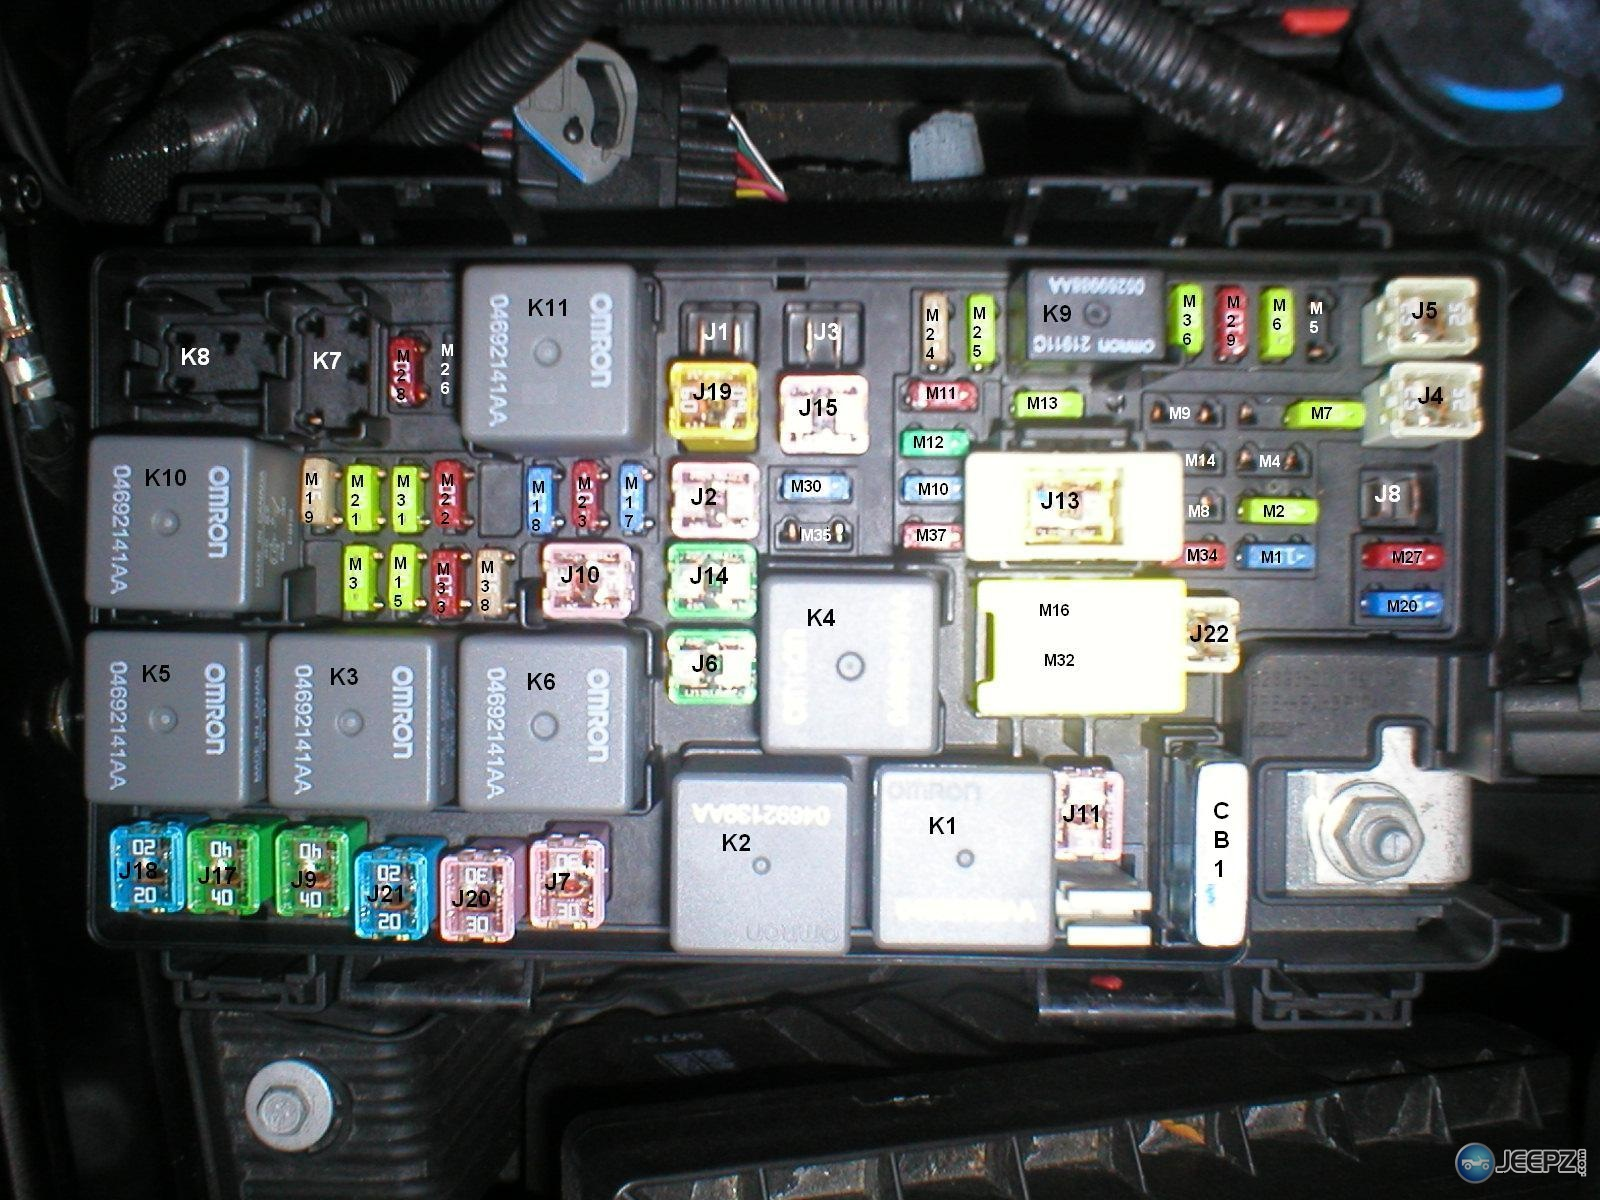 4488d1265060159 jeep jk 2009 fuse map layout diagram jkfusebox2009 jeep jk 2009 fuse map layout diagram 2007 jeep commander fuse box at arjmand.co